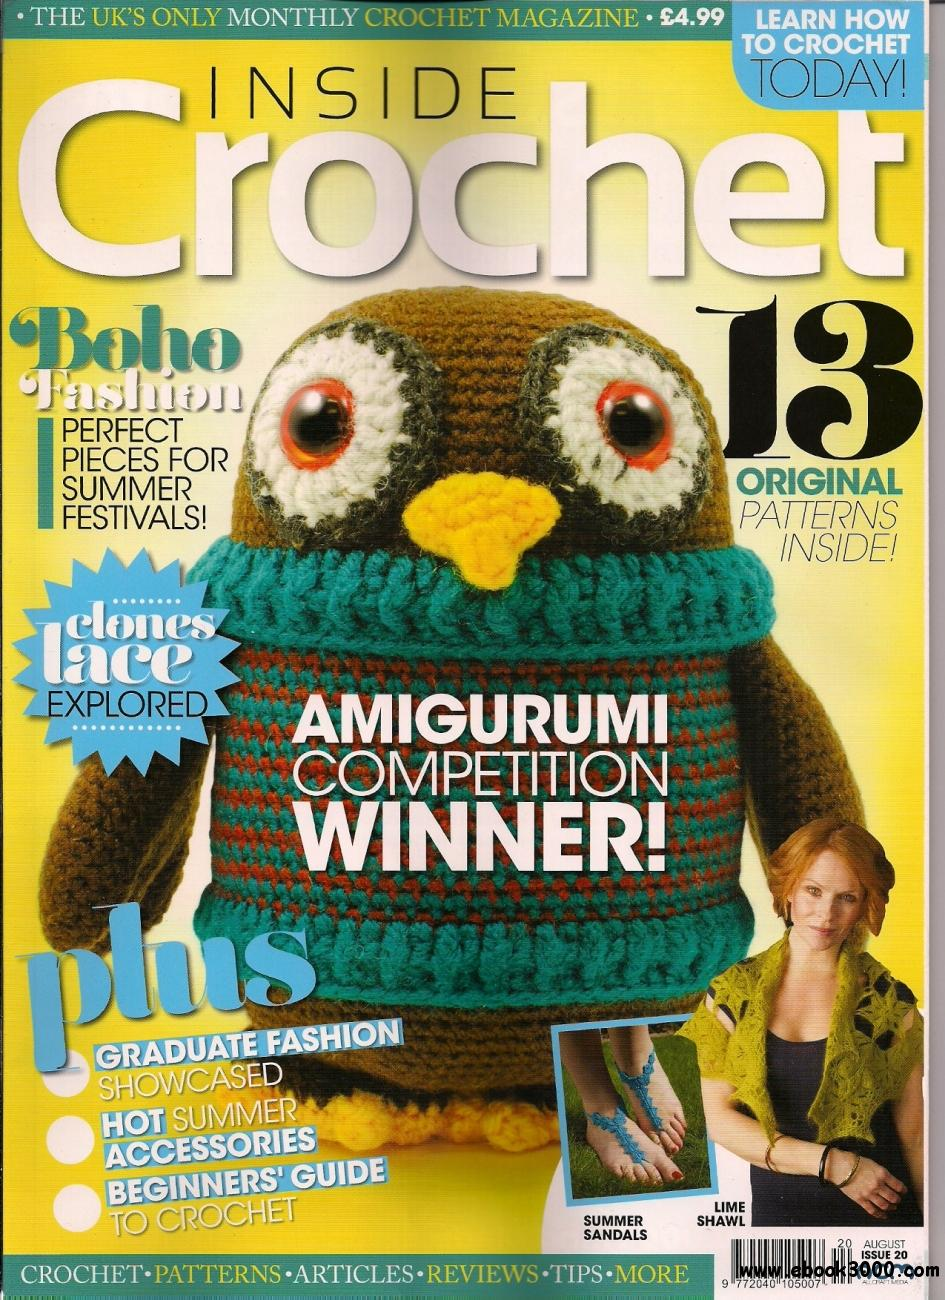 Inside Crochet, Issue 17 - May 2011 free download links ...